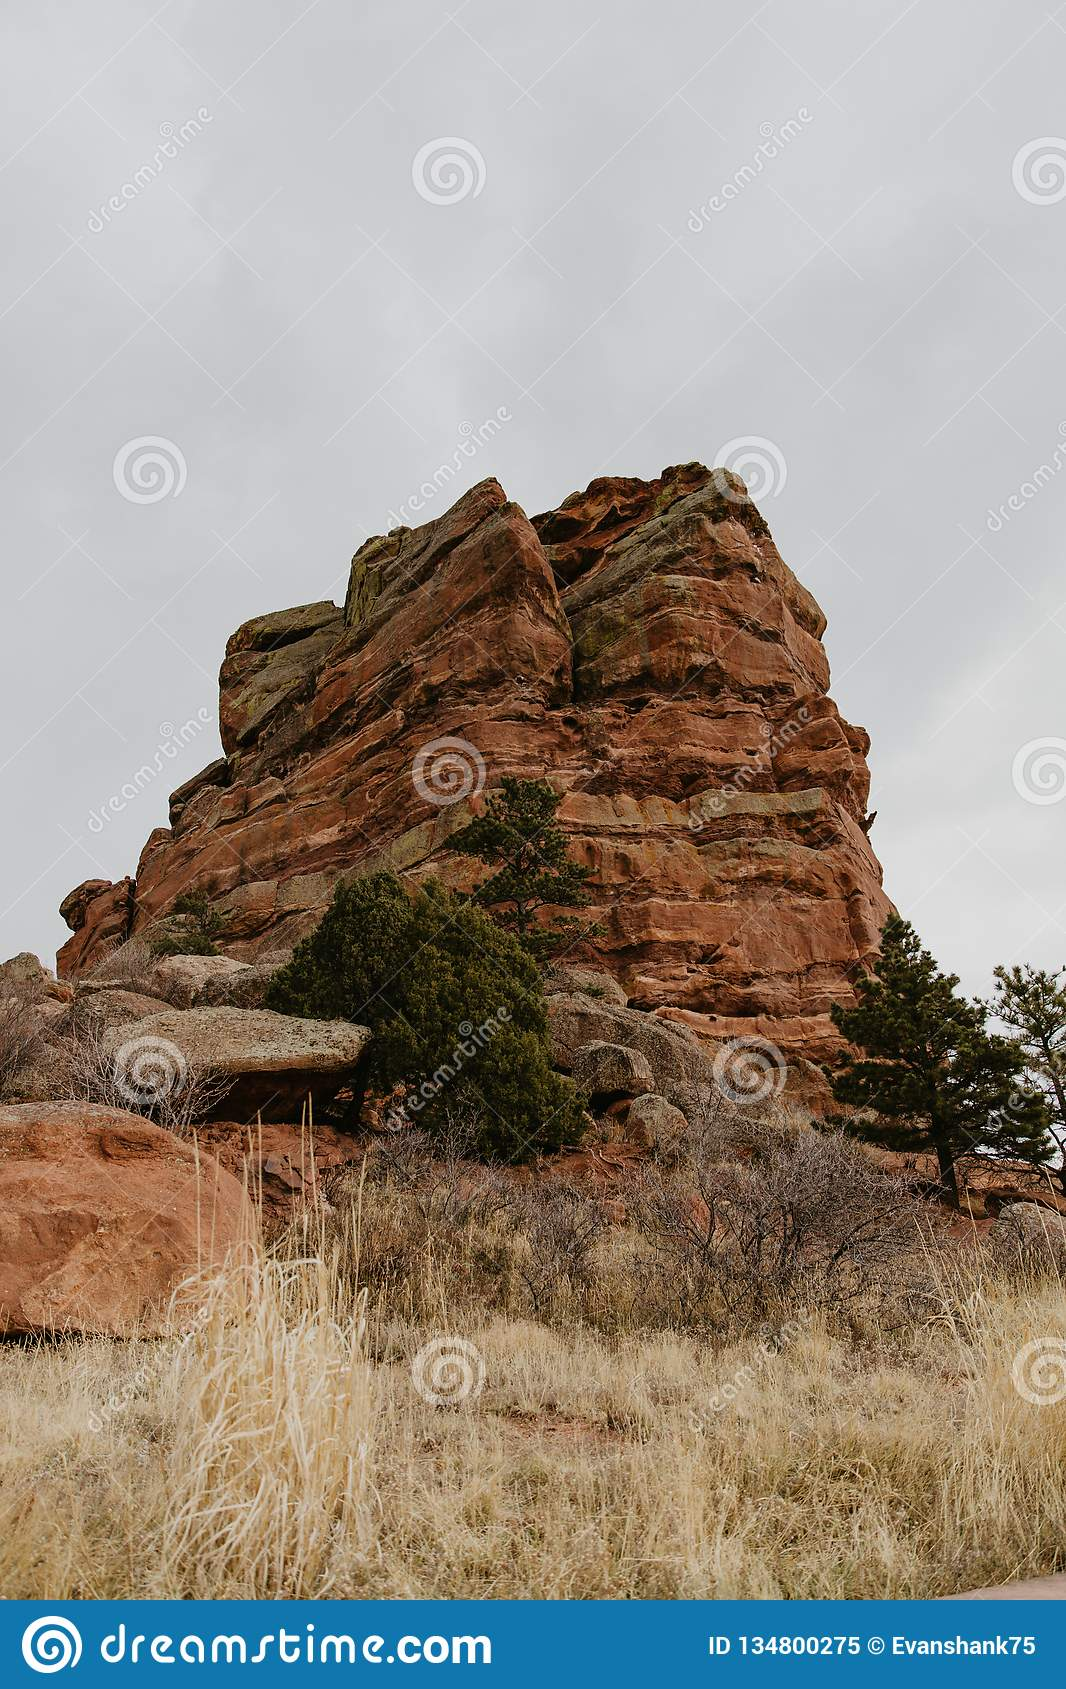 Beautiful Scenic View of Tall Red Rock Mountain Peak in USA Natural Southwest State Park